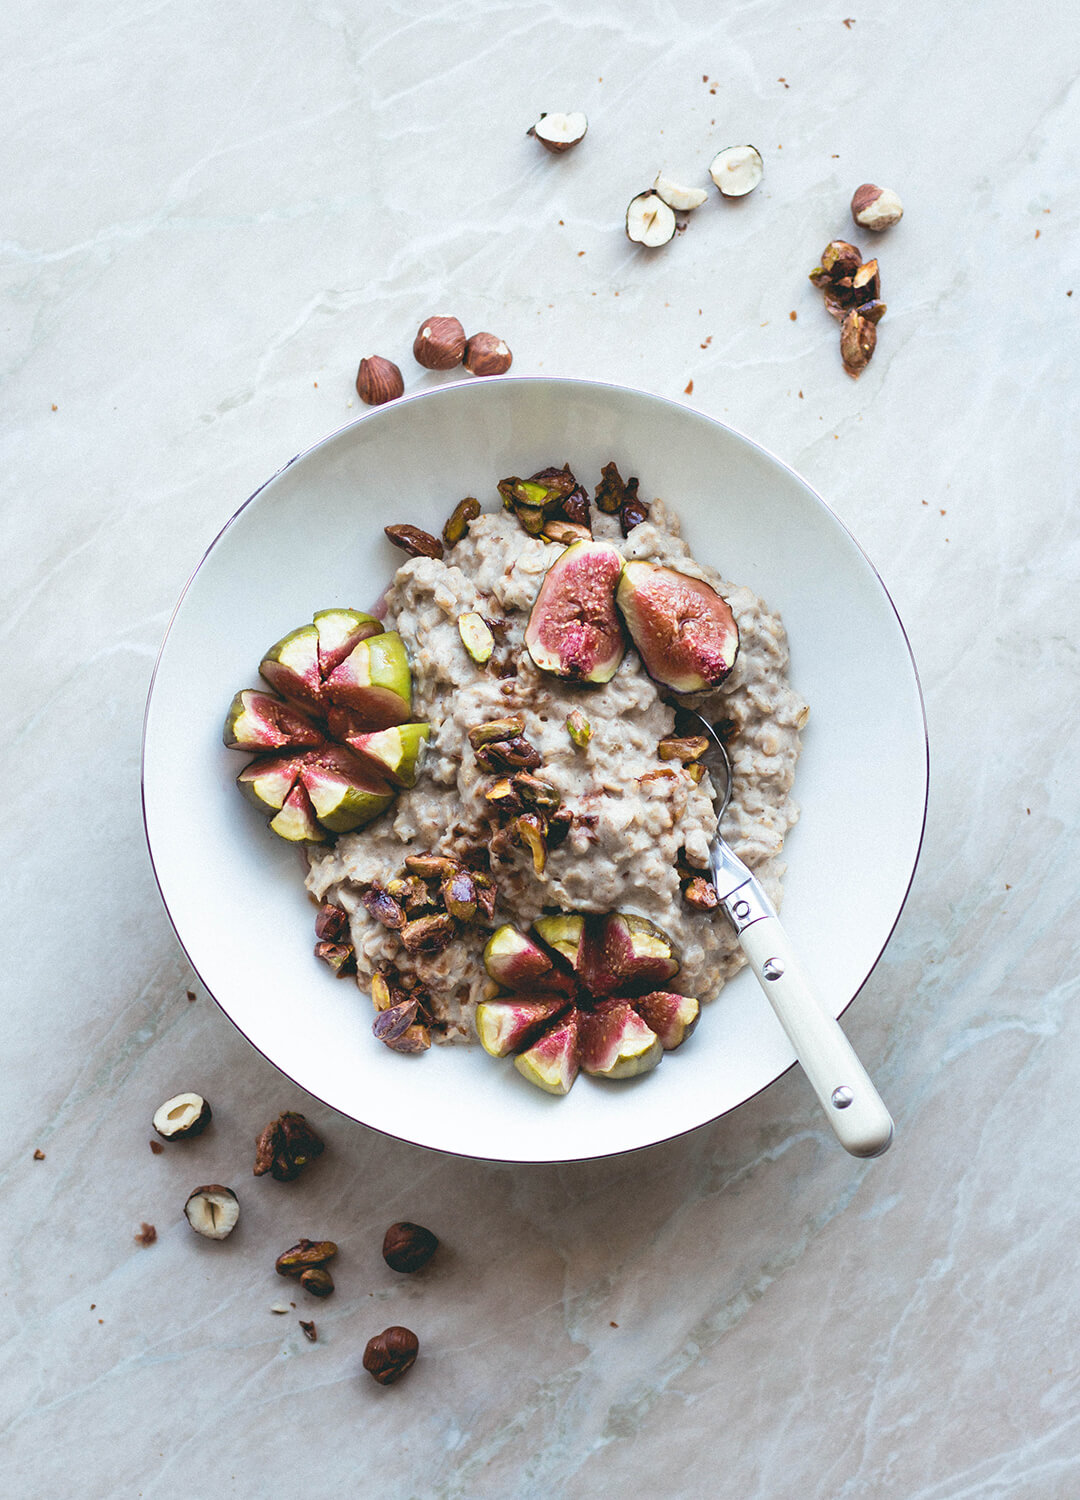 Hazelnut Oatmeal with Caramelized Pistachios and Figs